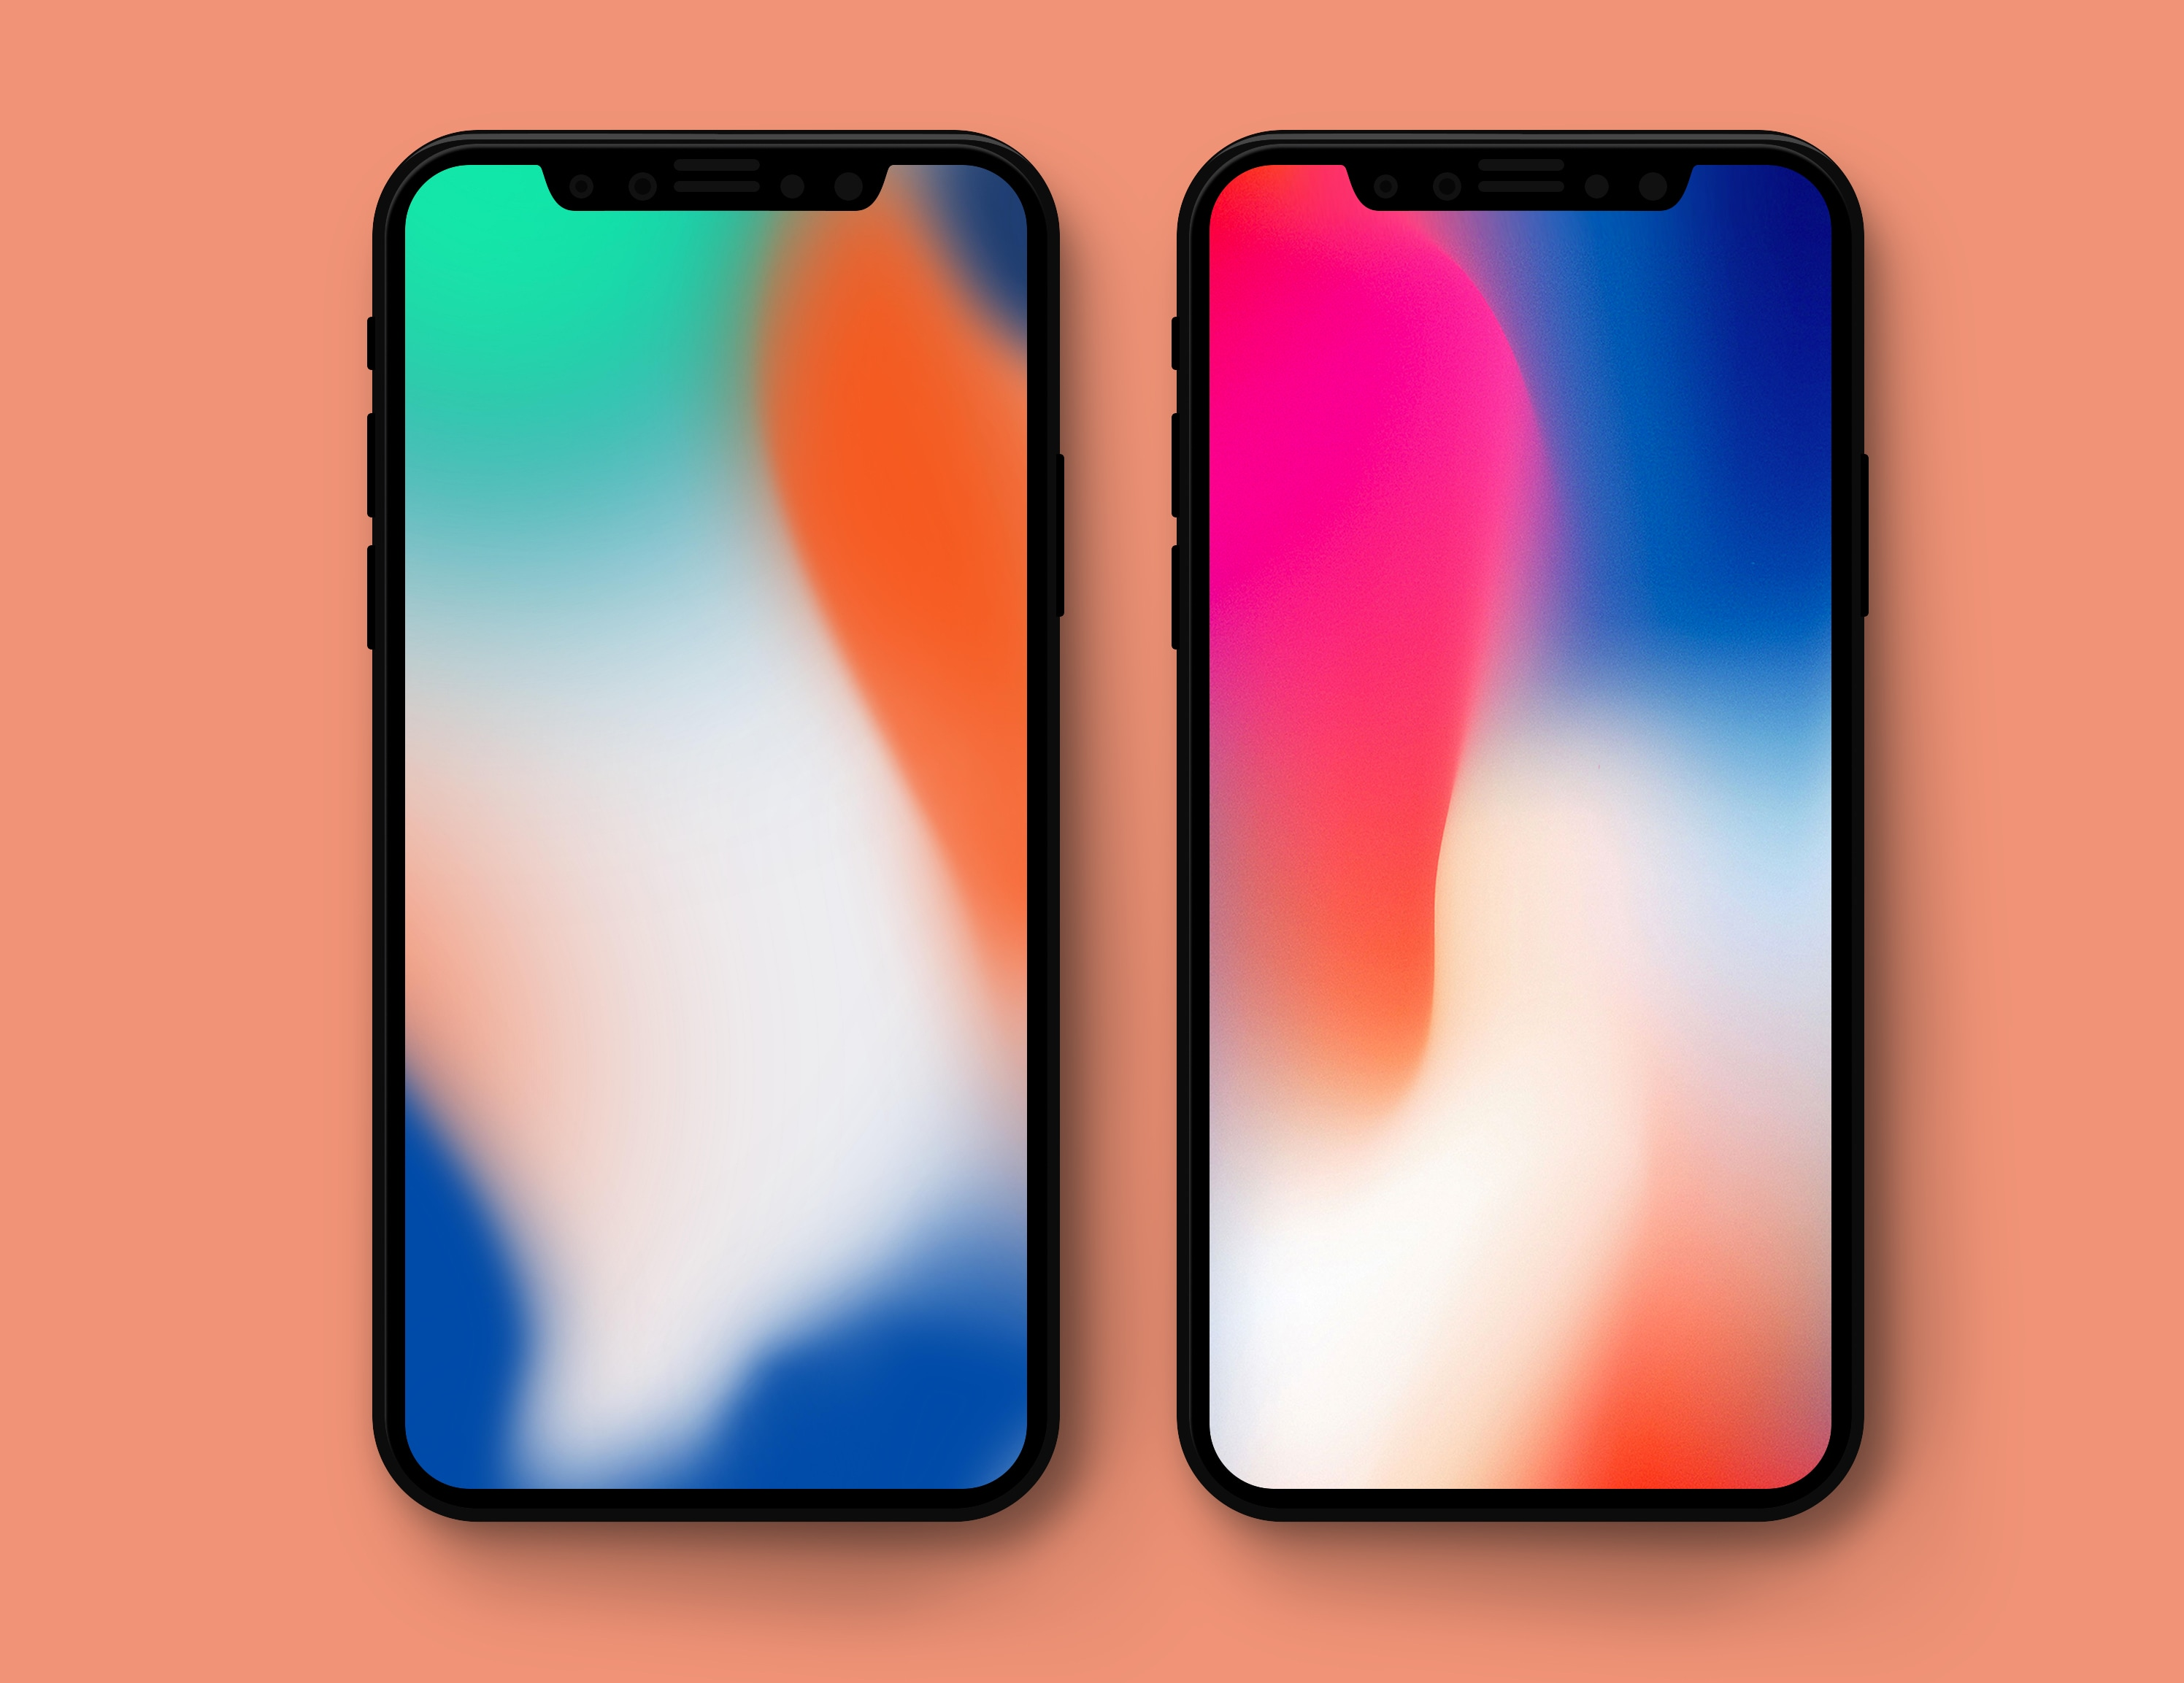 Iphone X Flagship Advertising Wallpapers